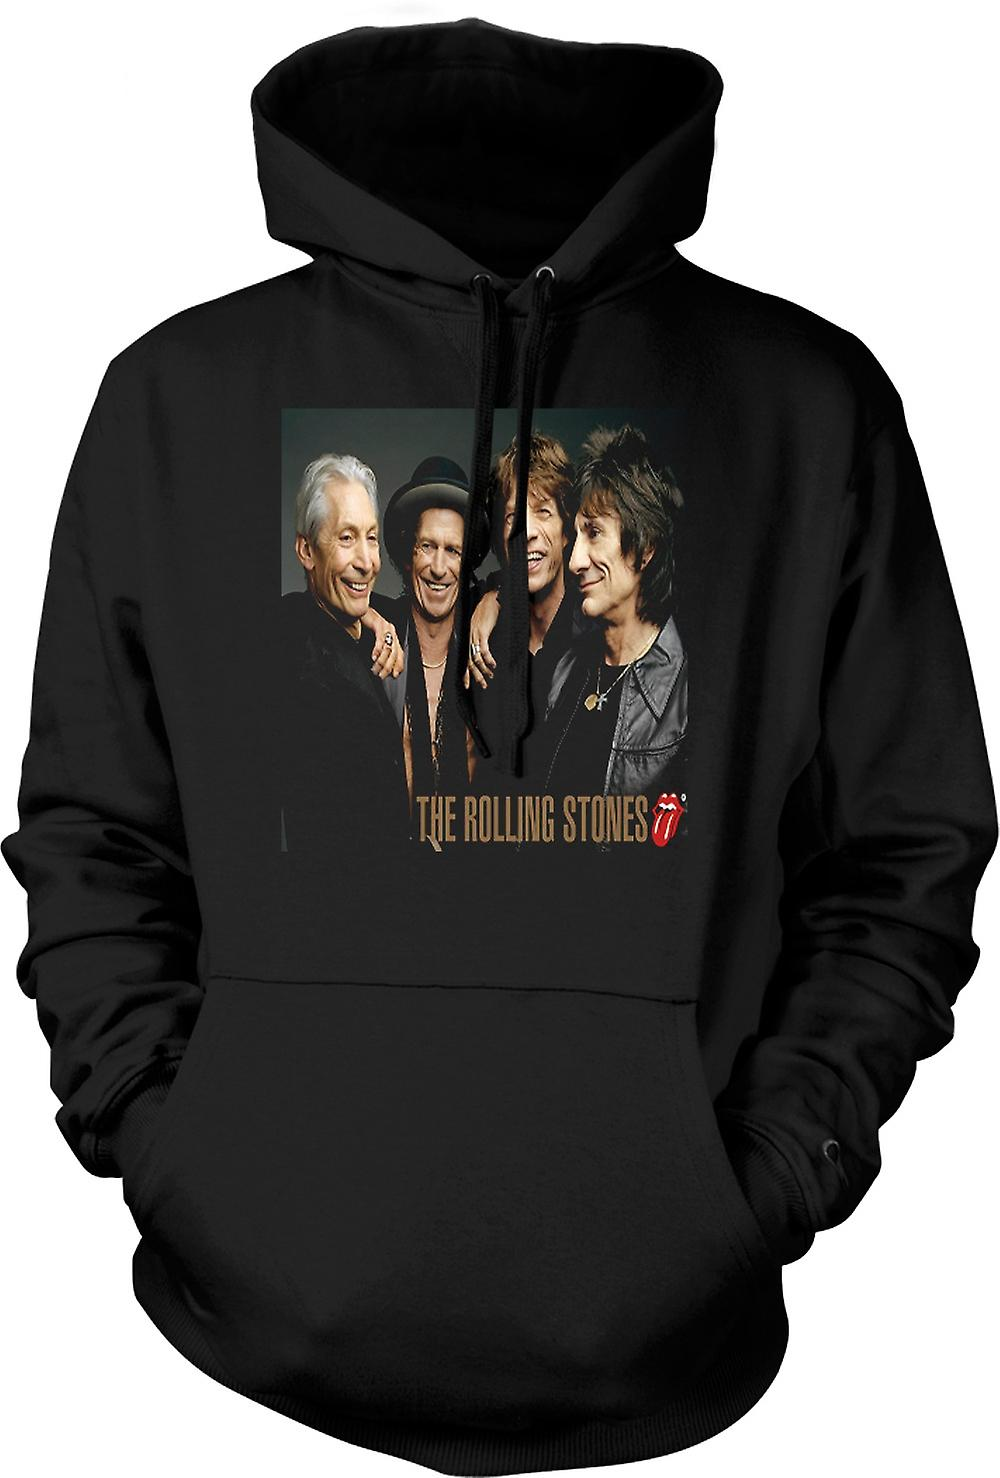 Kids Hoodie - The Rolling Stones - Band portret - Lips